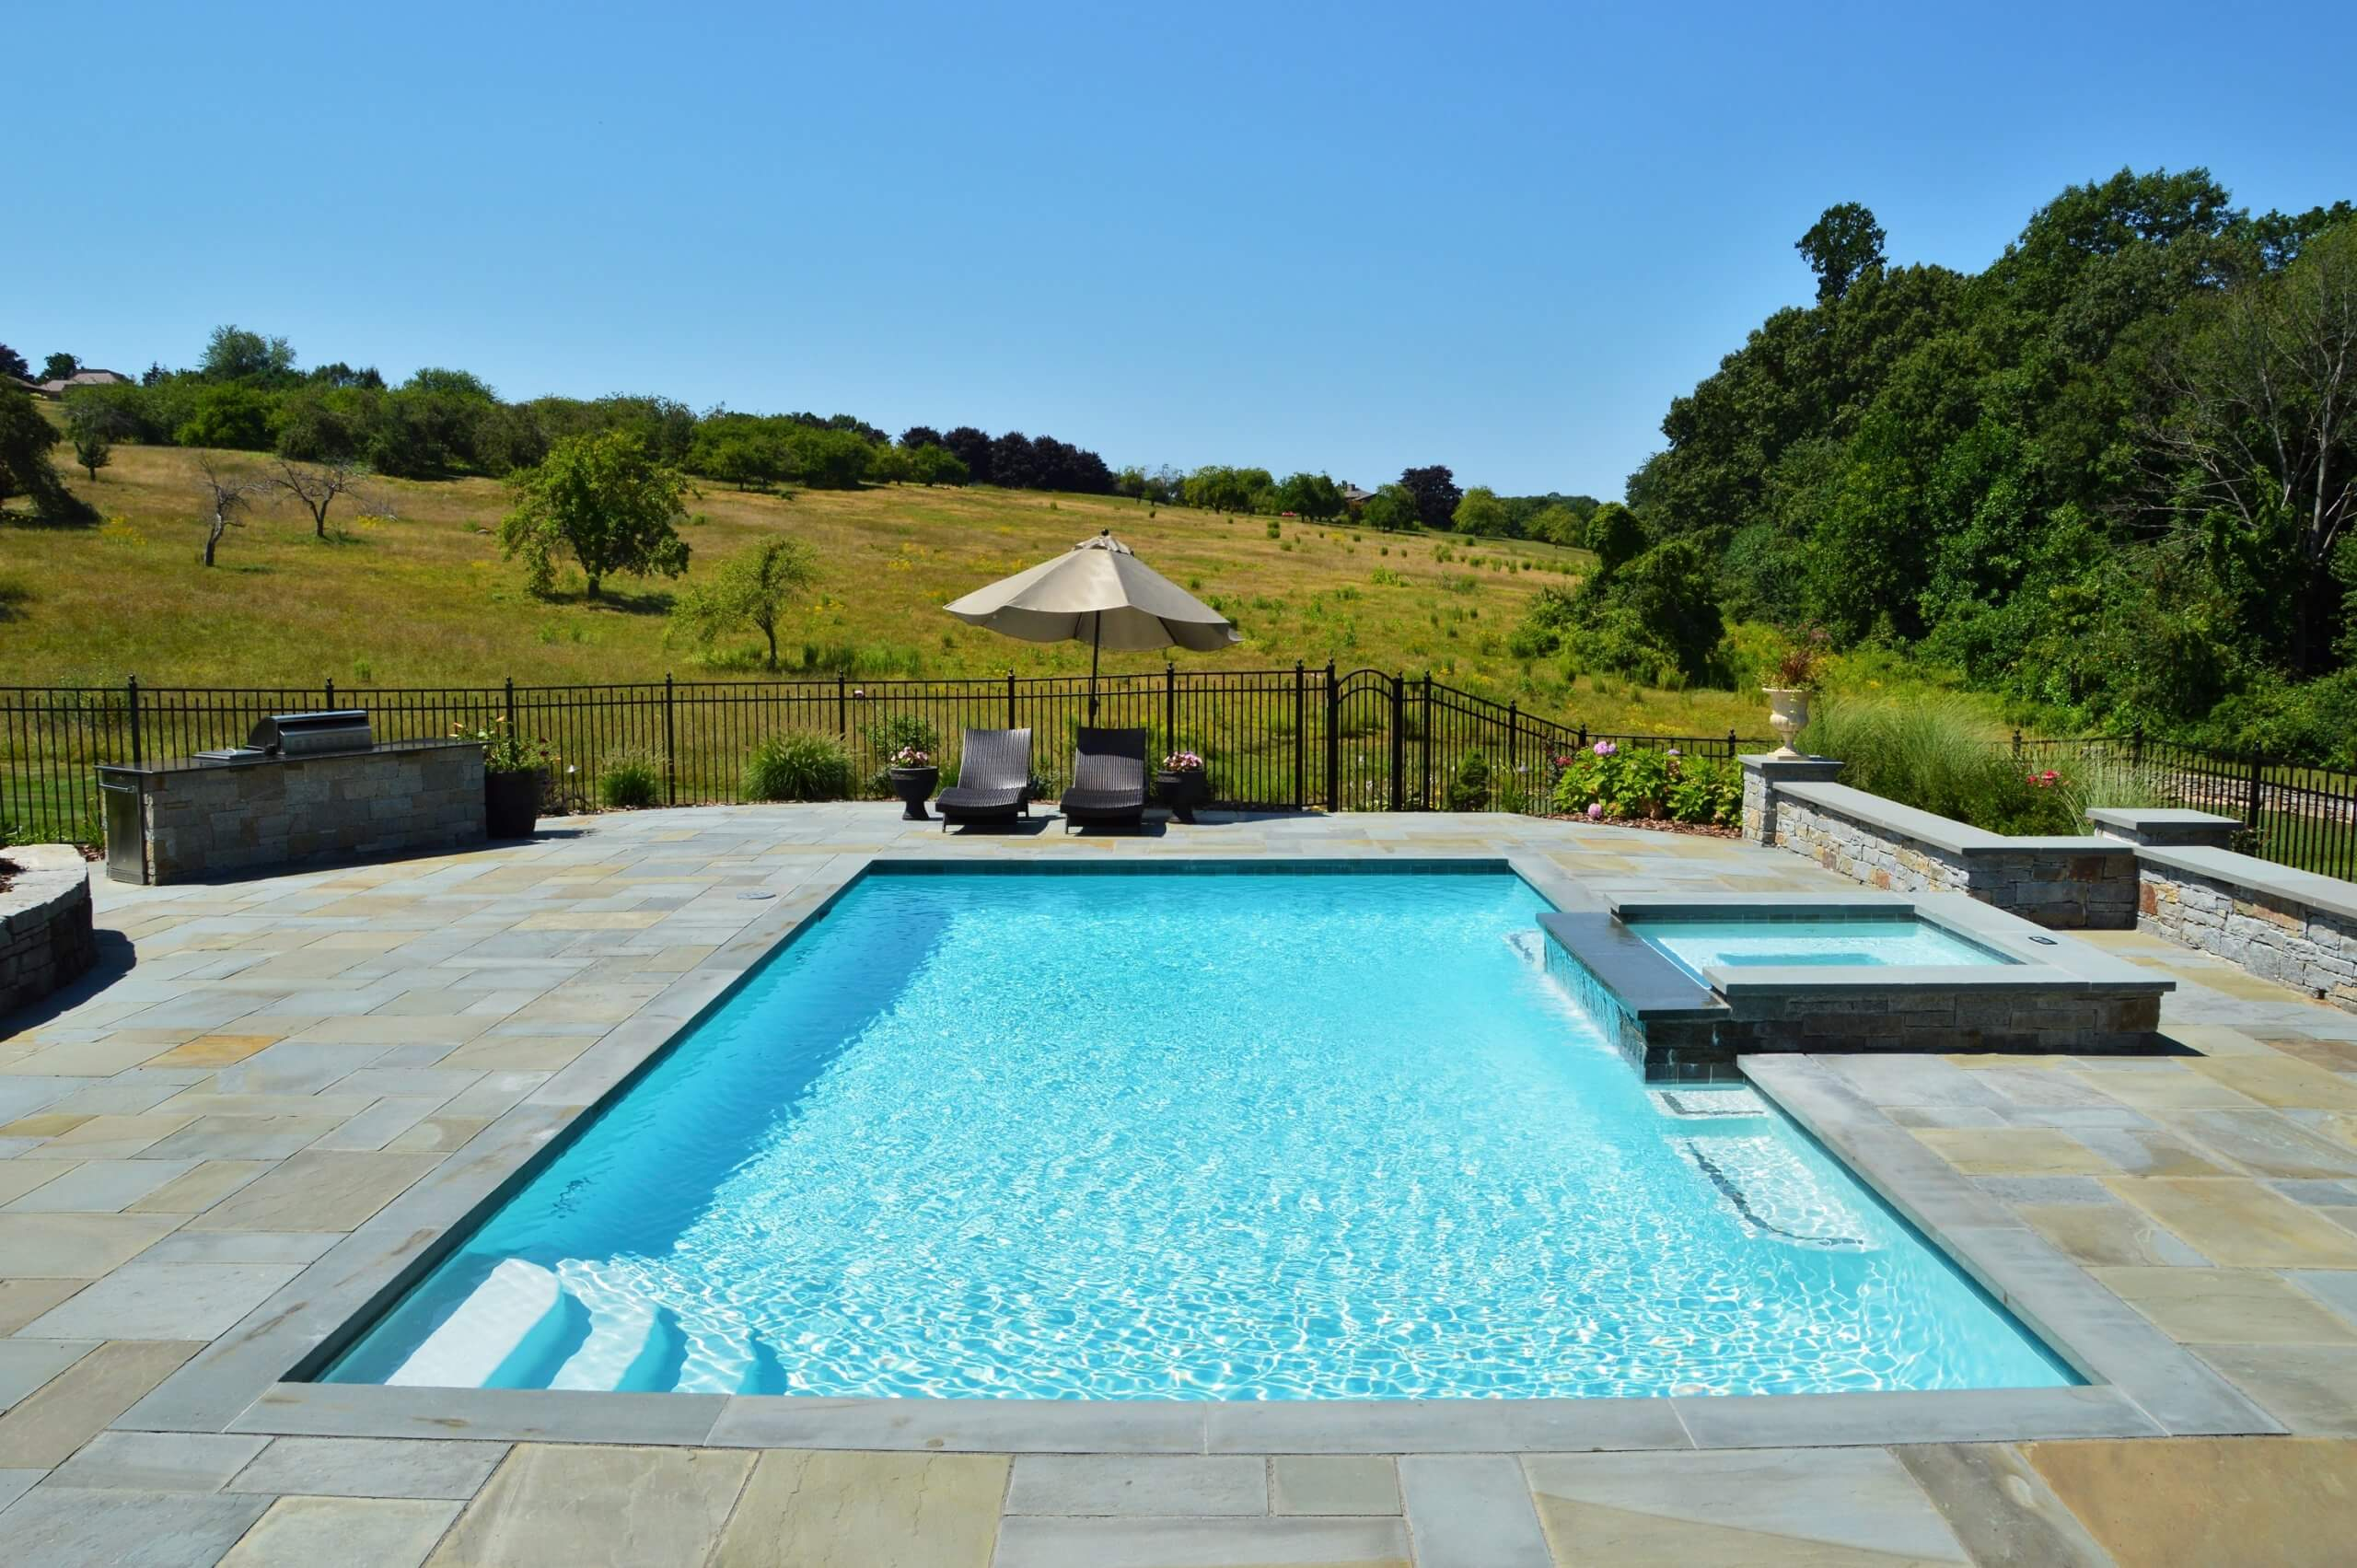 How Pool Renovations Can Transform Your Backyard